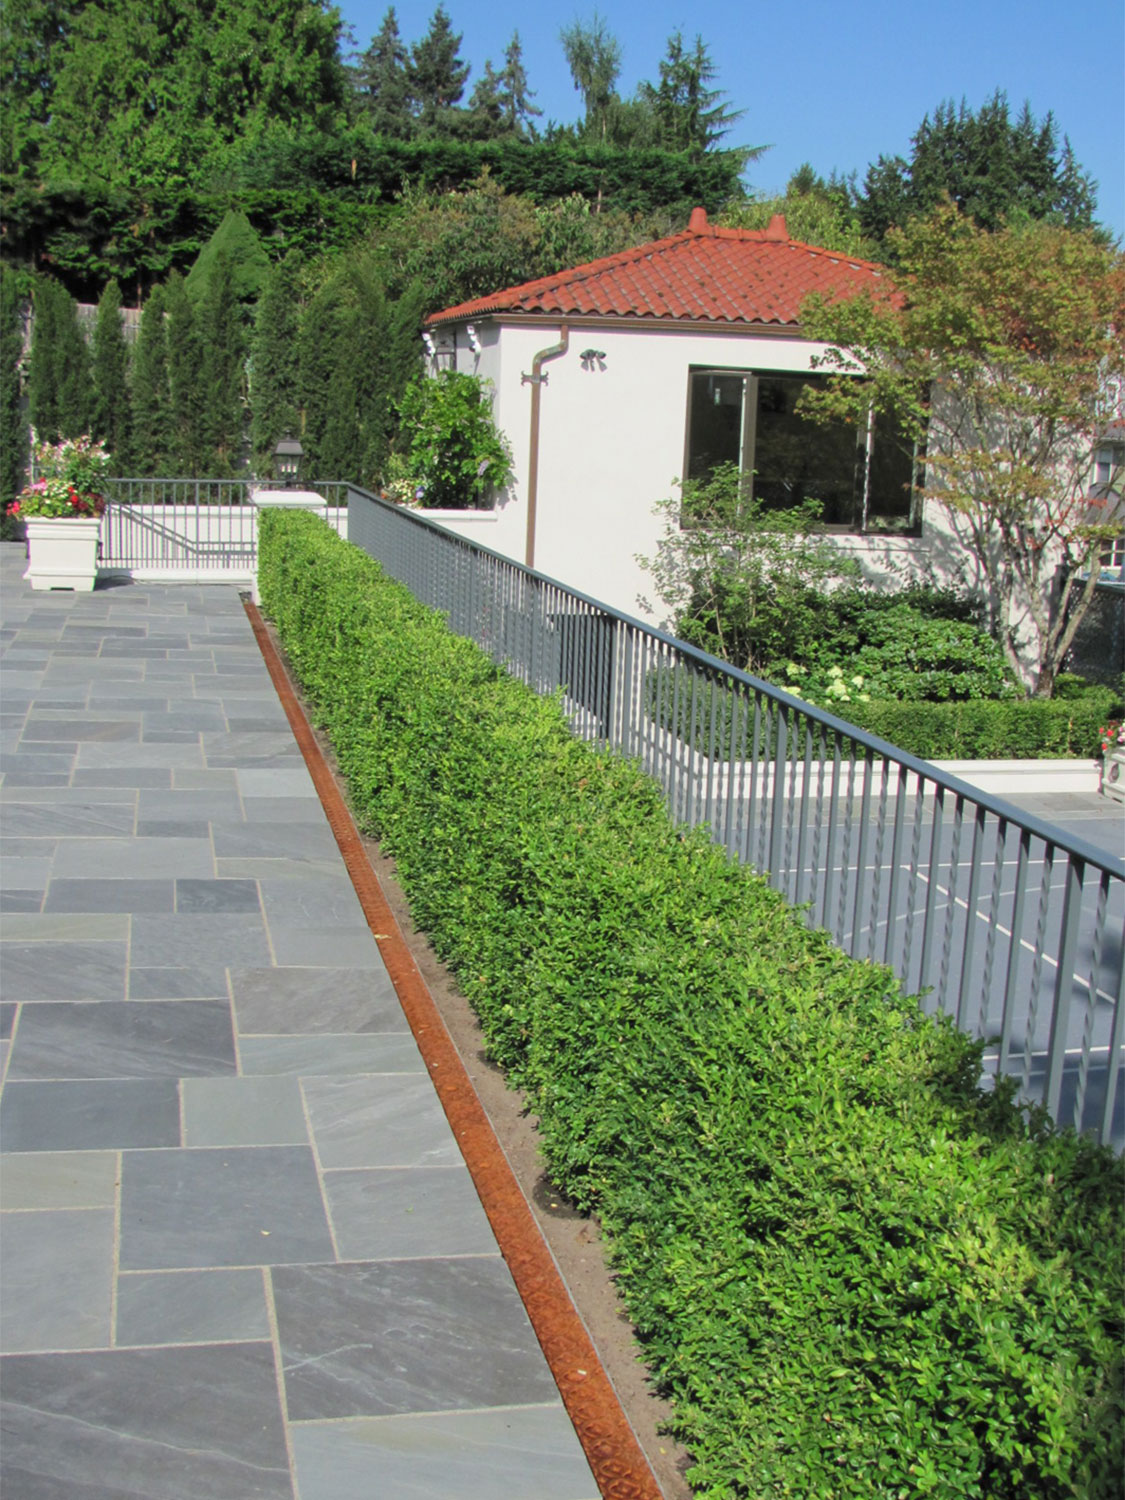 Iron Handrails and Guardrails for Slate Patio - With Shrubs - Seattle, WA